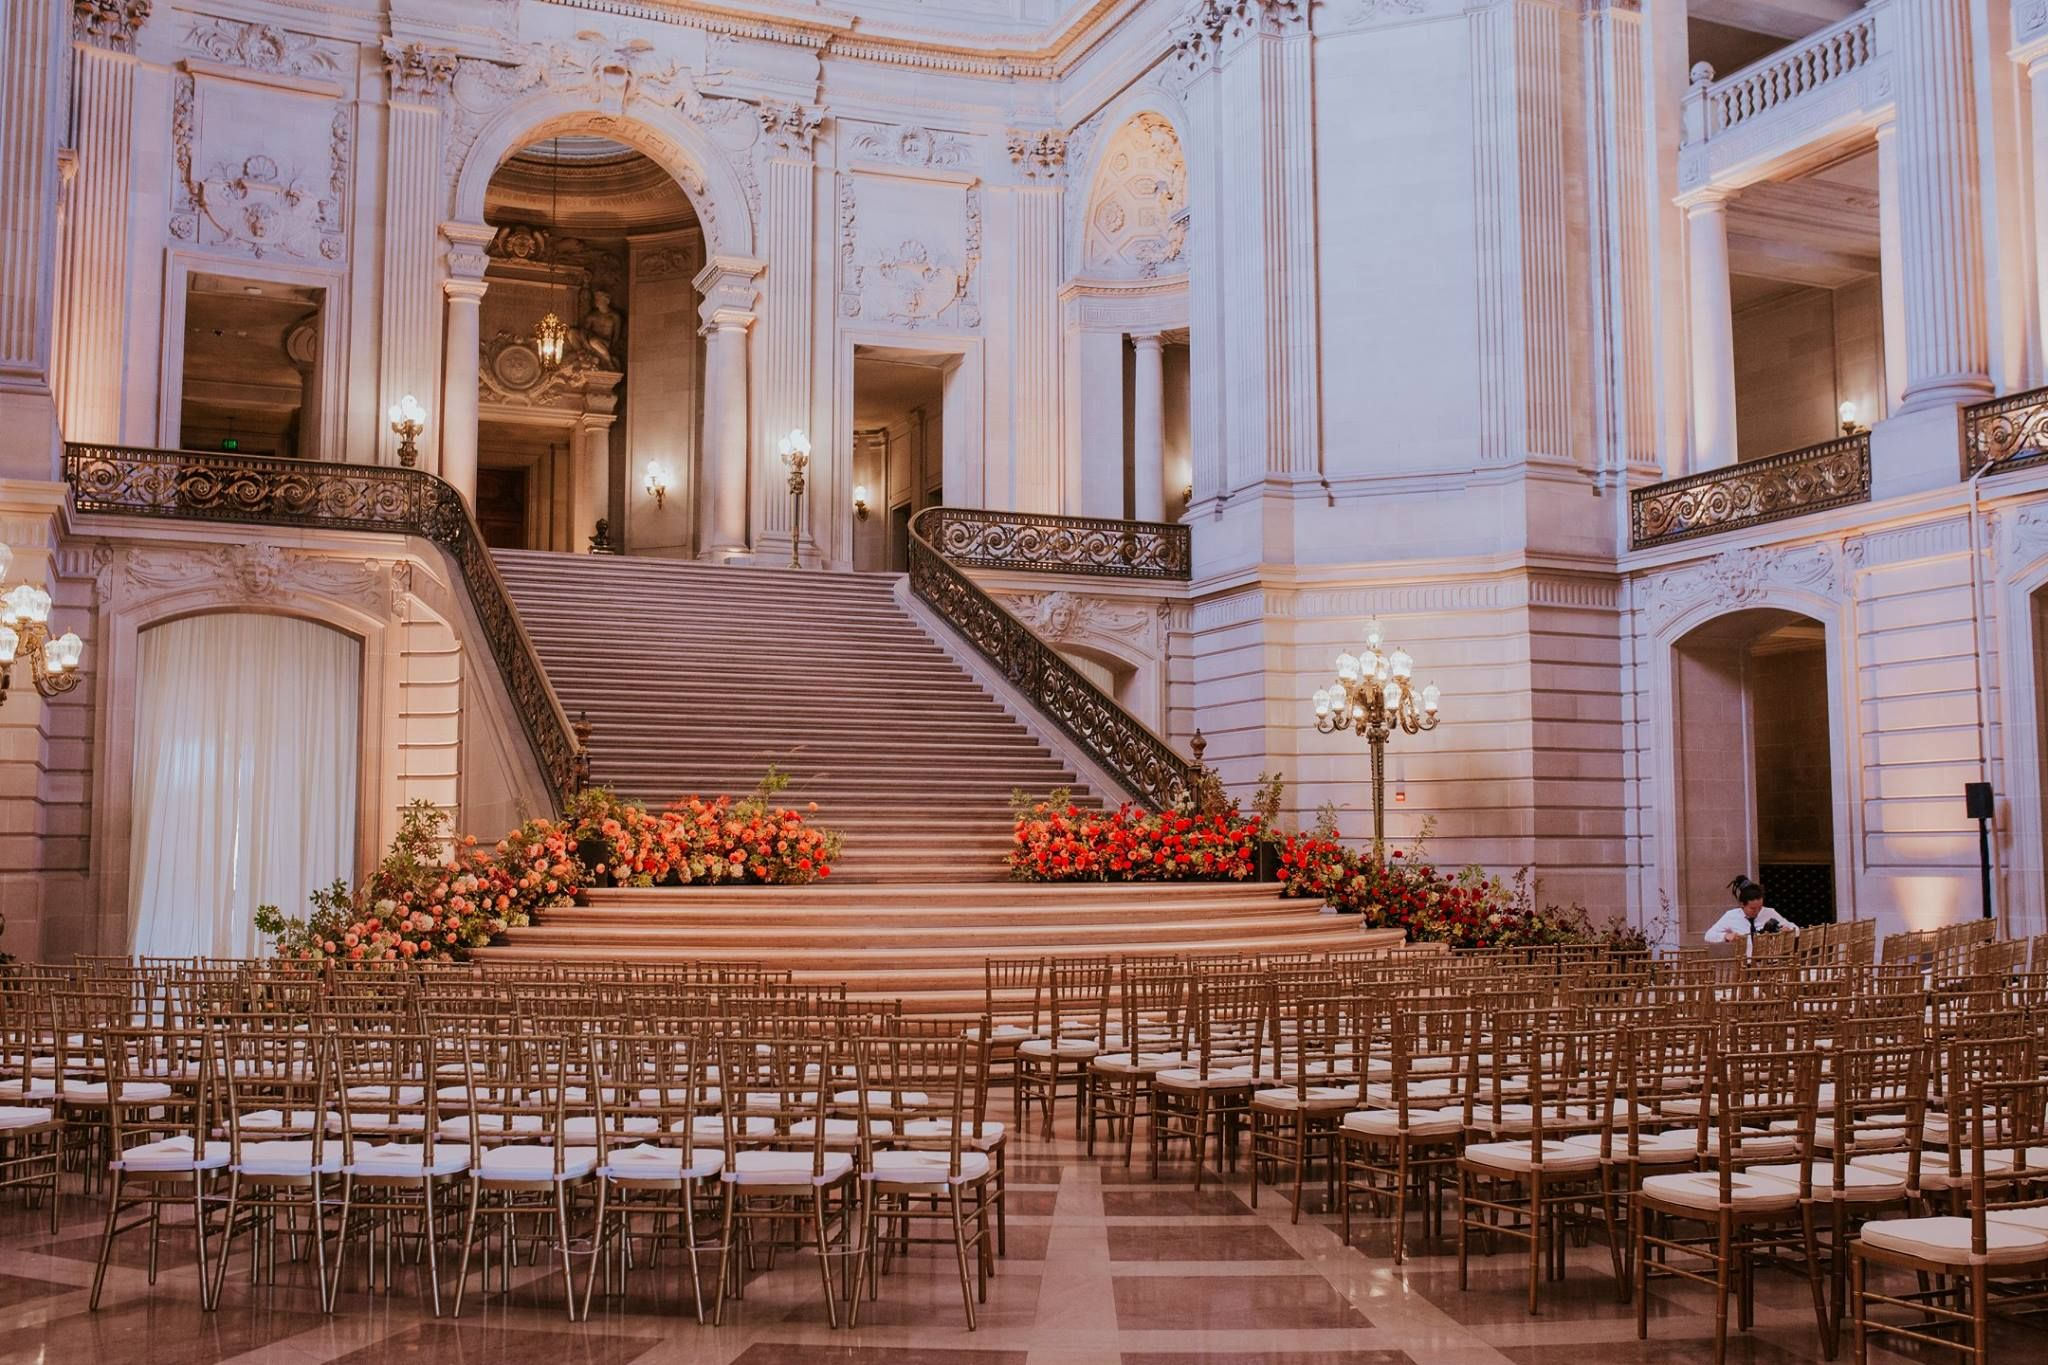 Wedding Goals To Get Married In Front Of The Grand Staircase Of San Francisco City Hall Under The S San Francisco City Hall Gold Chiavari Chairs Party Rentals